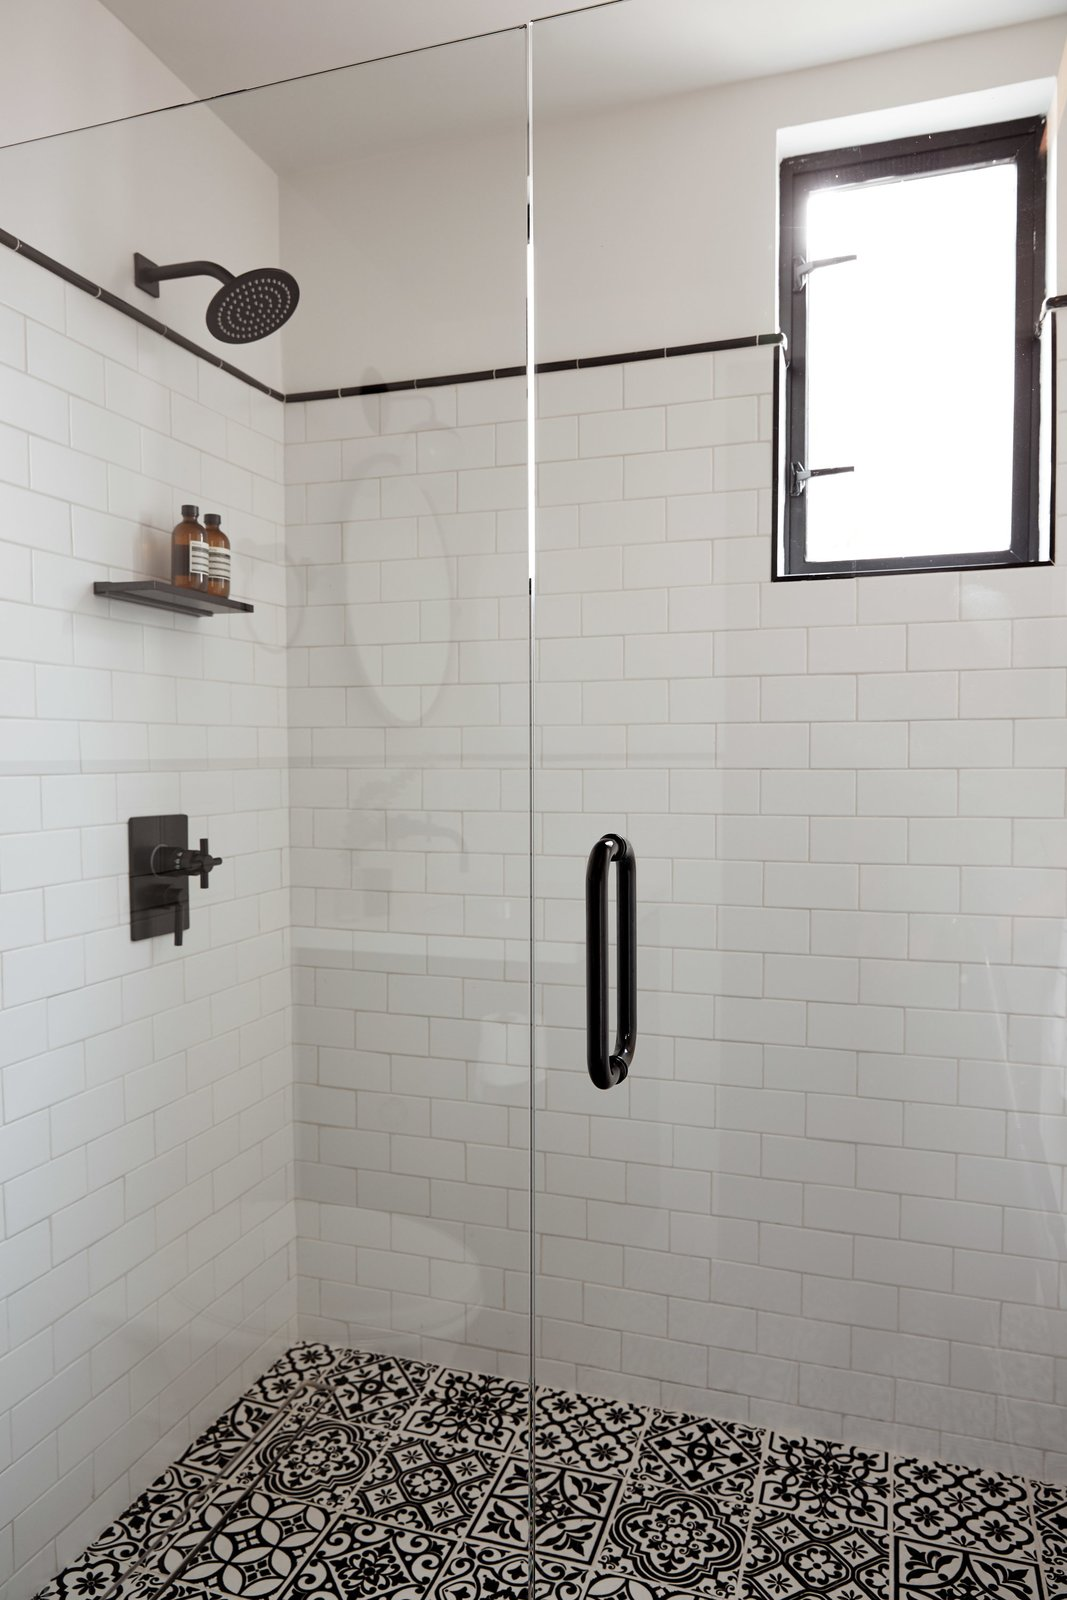 Bath, One Piece, Wall, Undermount, Enclosed, Ceramic Tile, Tile, and Porcelain Tile The walls use white subway tiles with black accent trim molding, and the floor features decorative artisan glazed tiles with raised surface patterns.  Best Bath Enclosed Wall Tile Undermount Photos from Normal Heights Residence